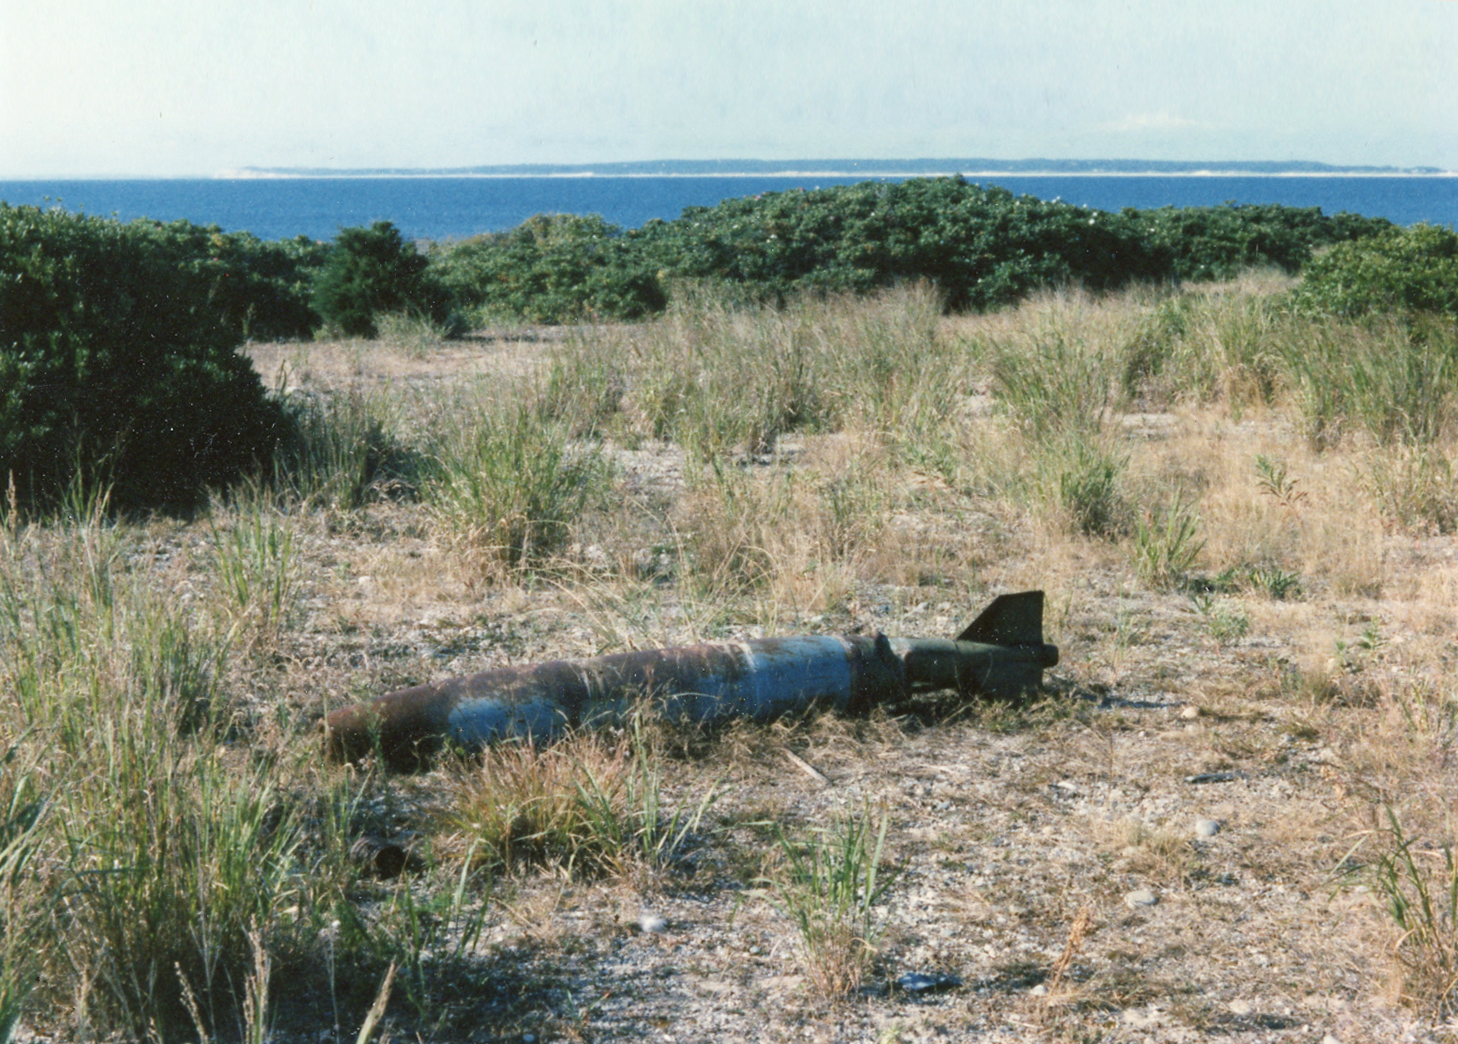 Unexploded ordinance, circa 1987